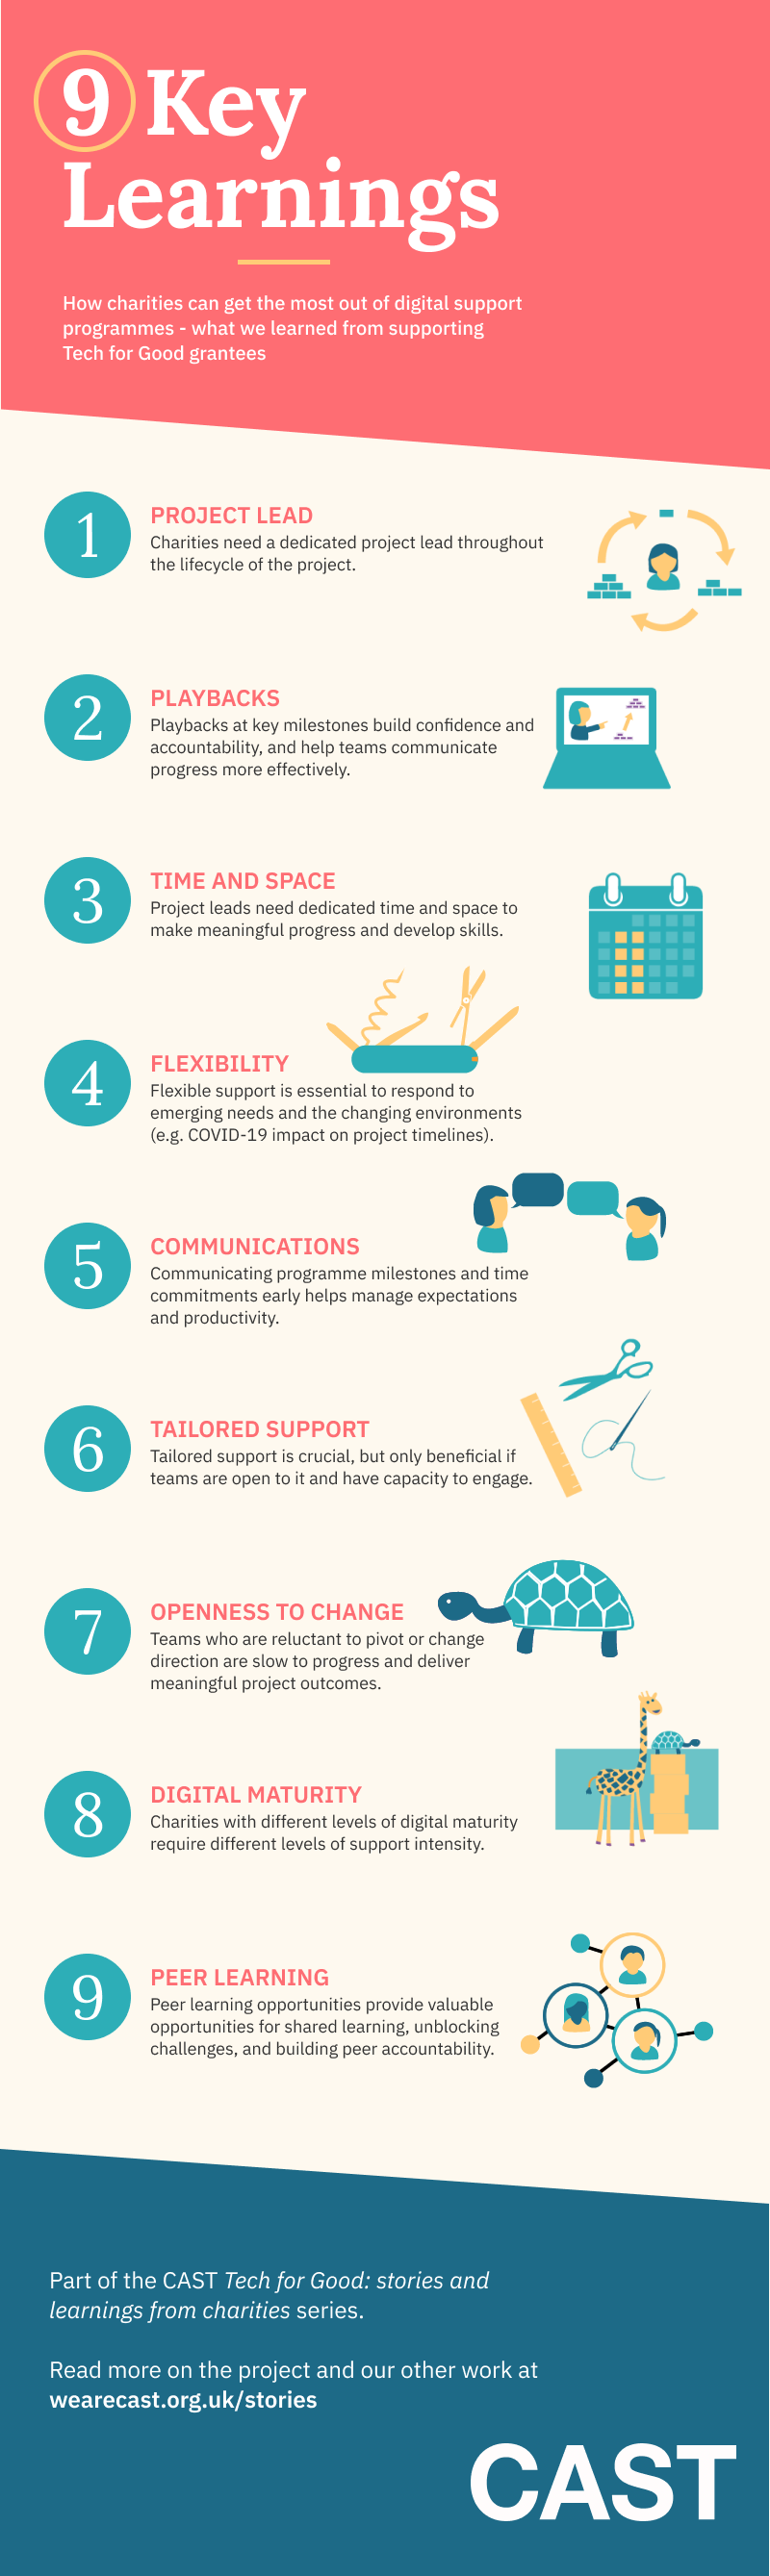 Infographic listing the headers for each key learning